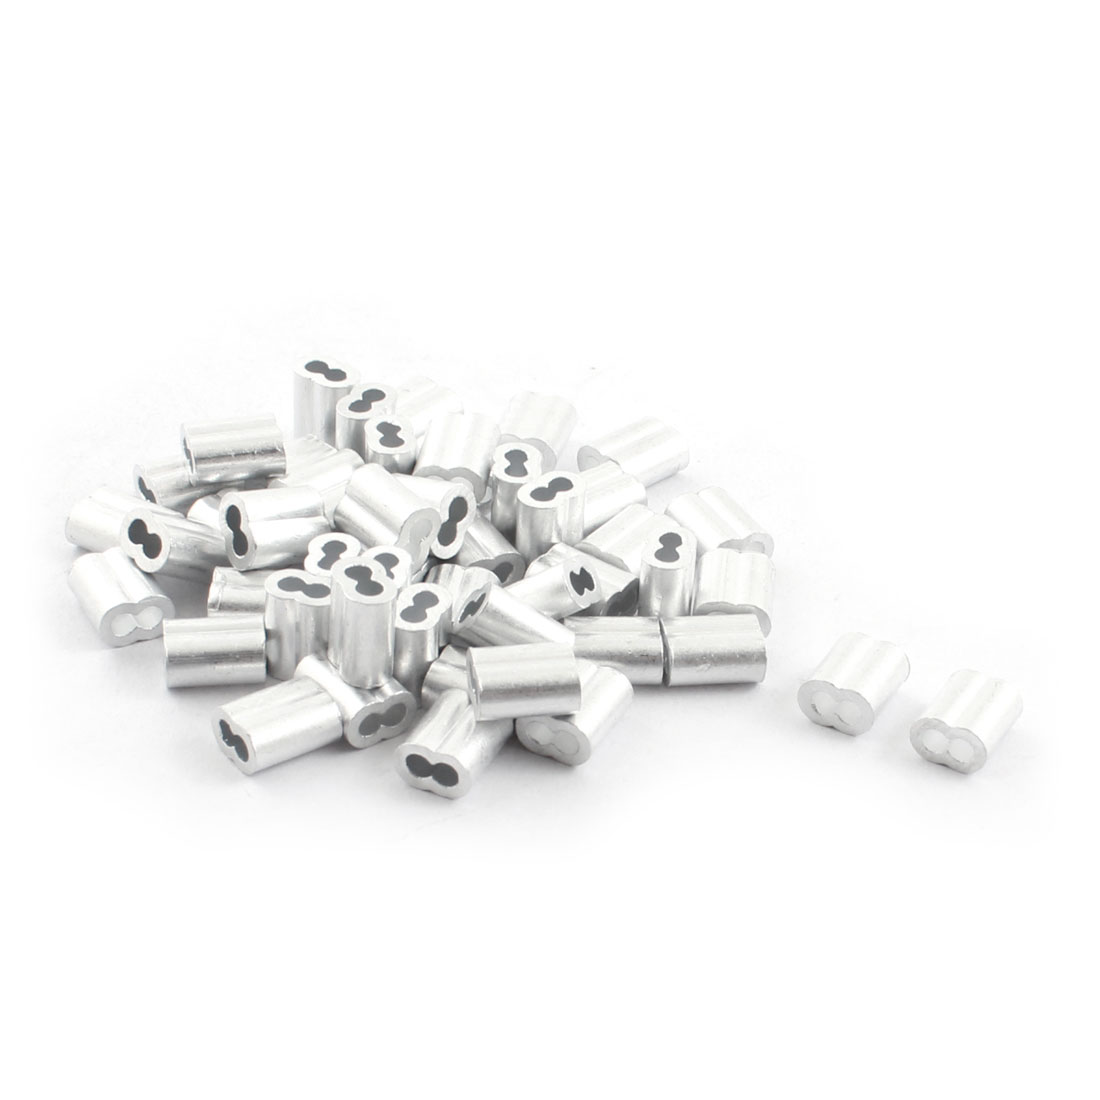 "50Pcs 1/8""x 3/8"" Aluminum Hourglass Ferrules Sleeve Crimp for 2mm Wire Rope"